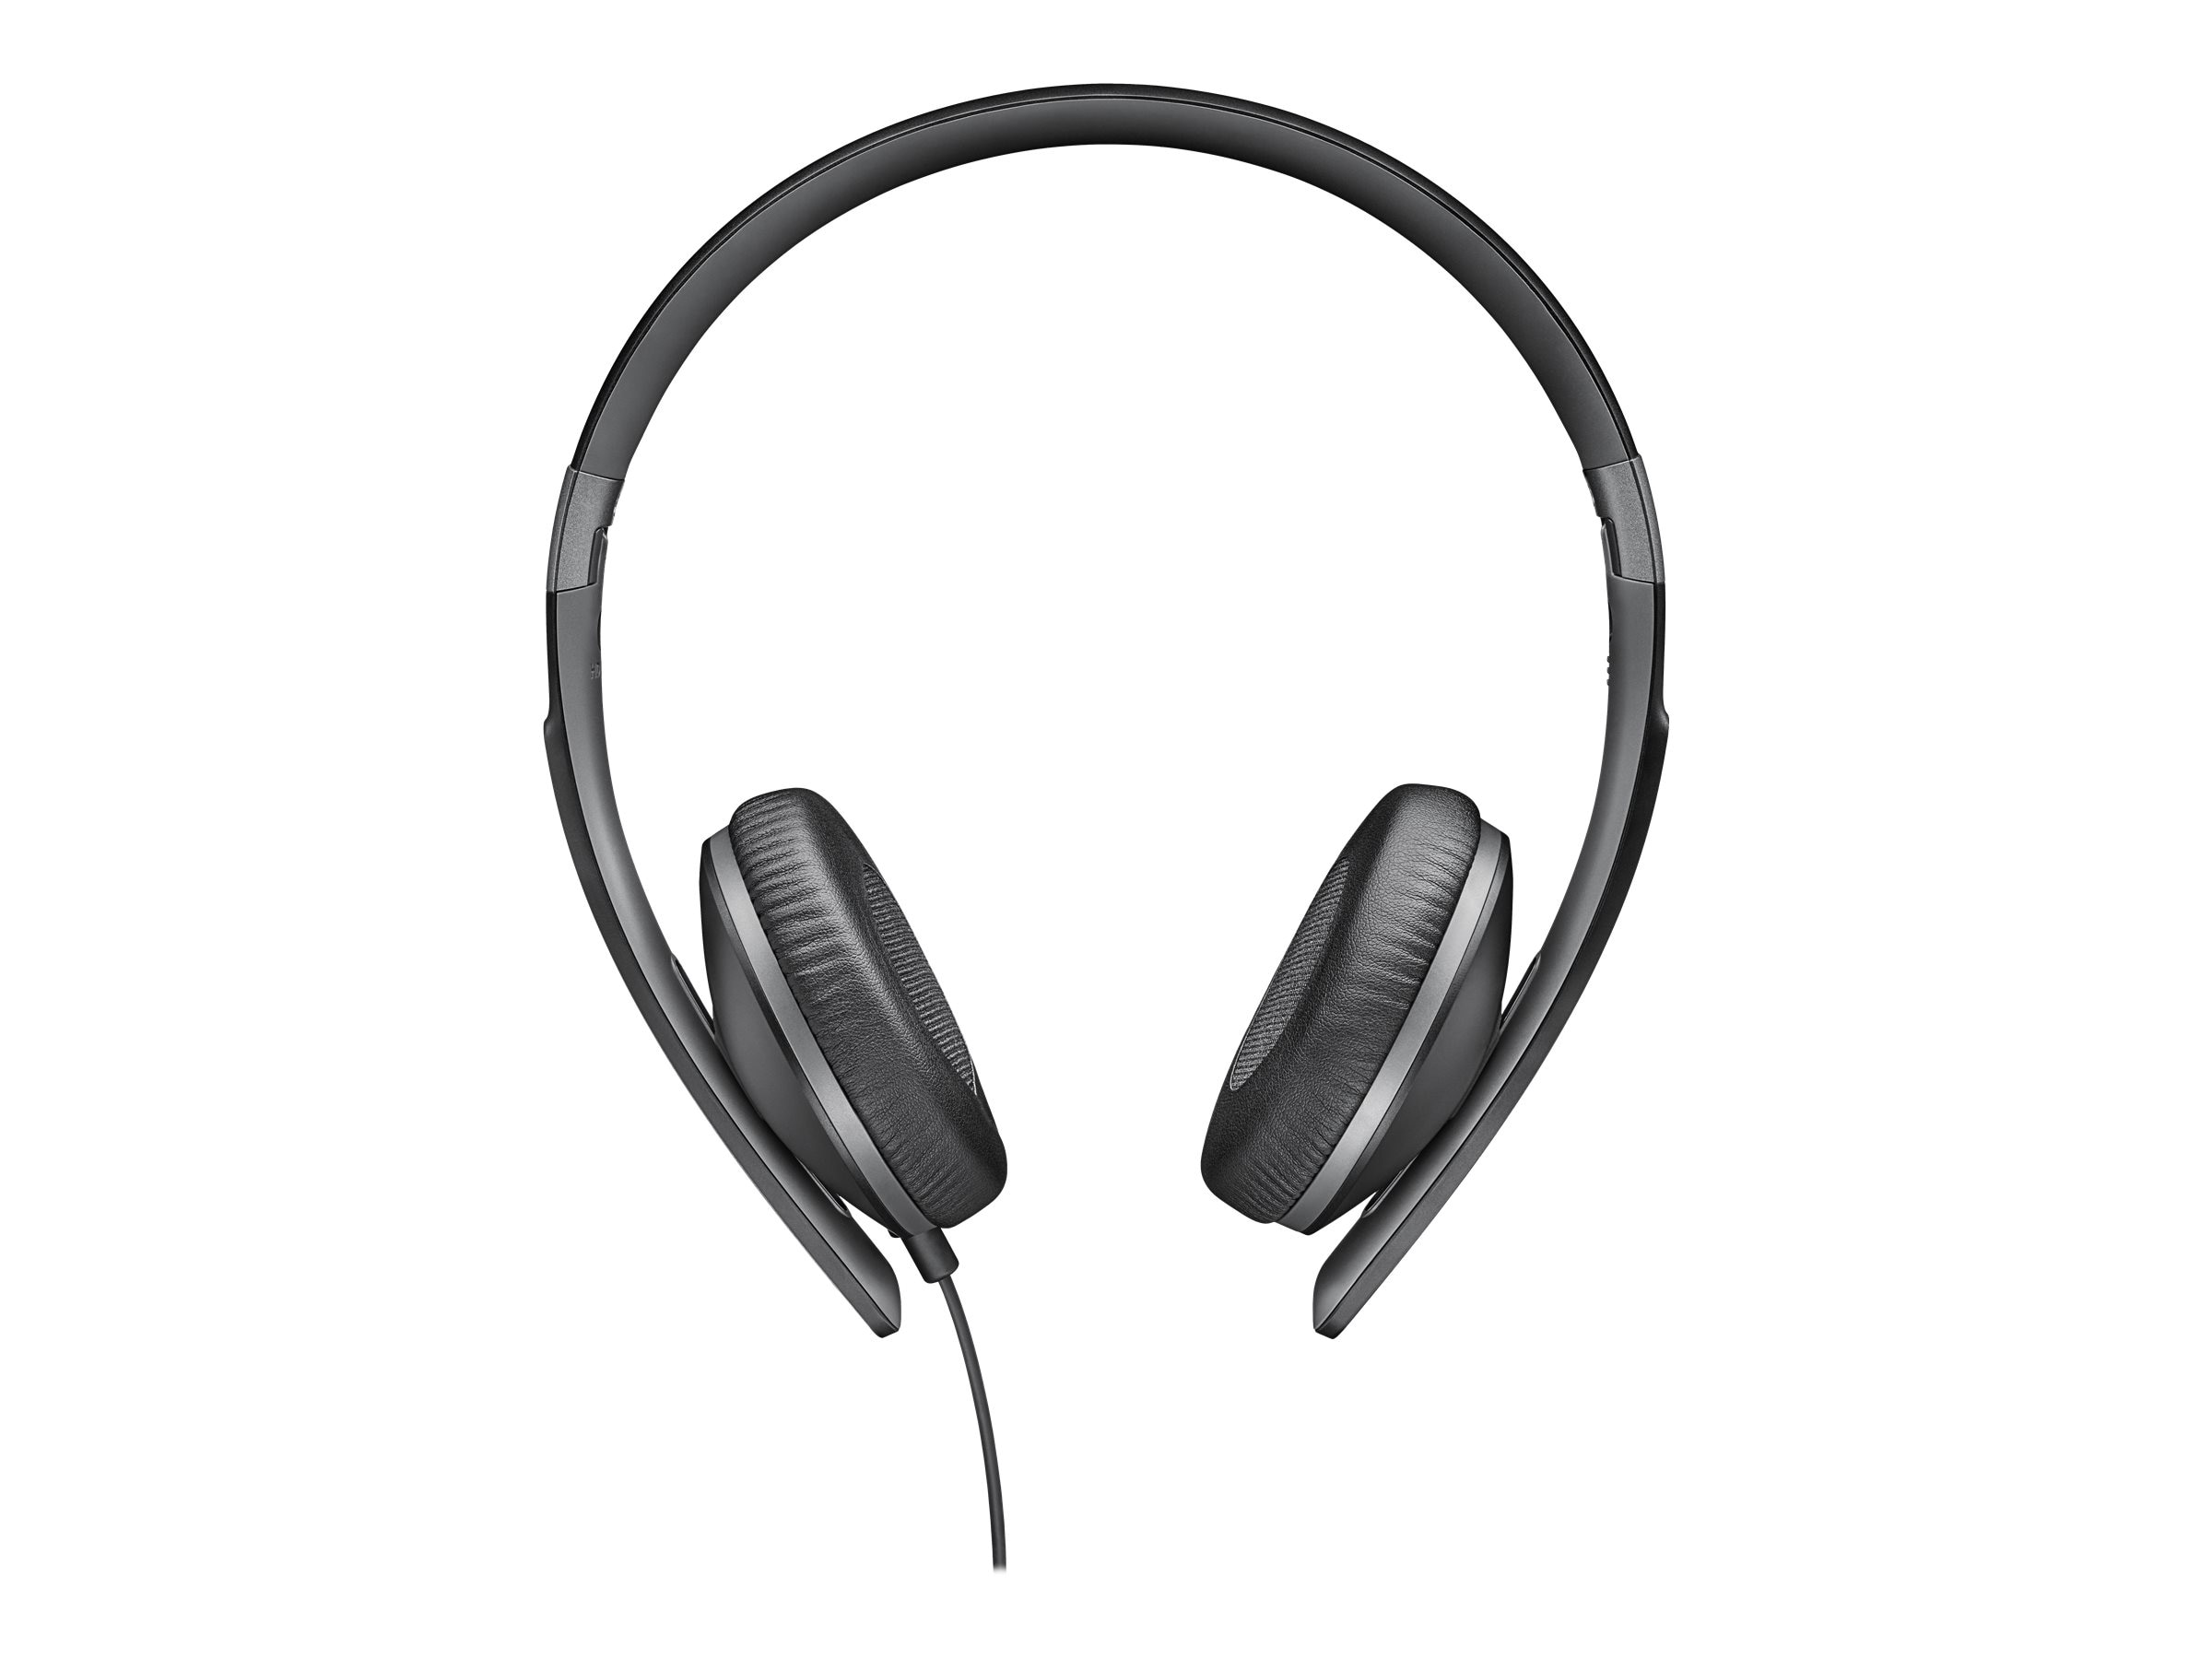 Sennheiser Closed Back On Ear Headphones - Black